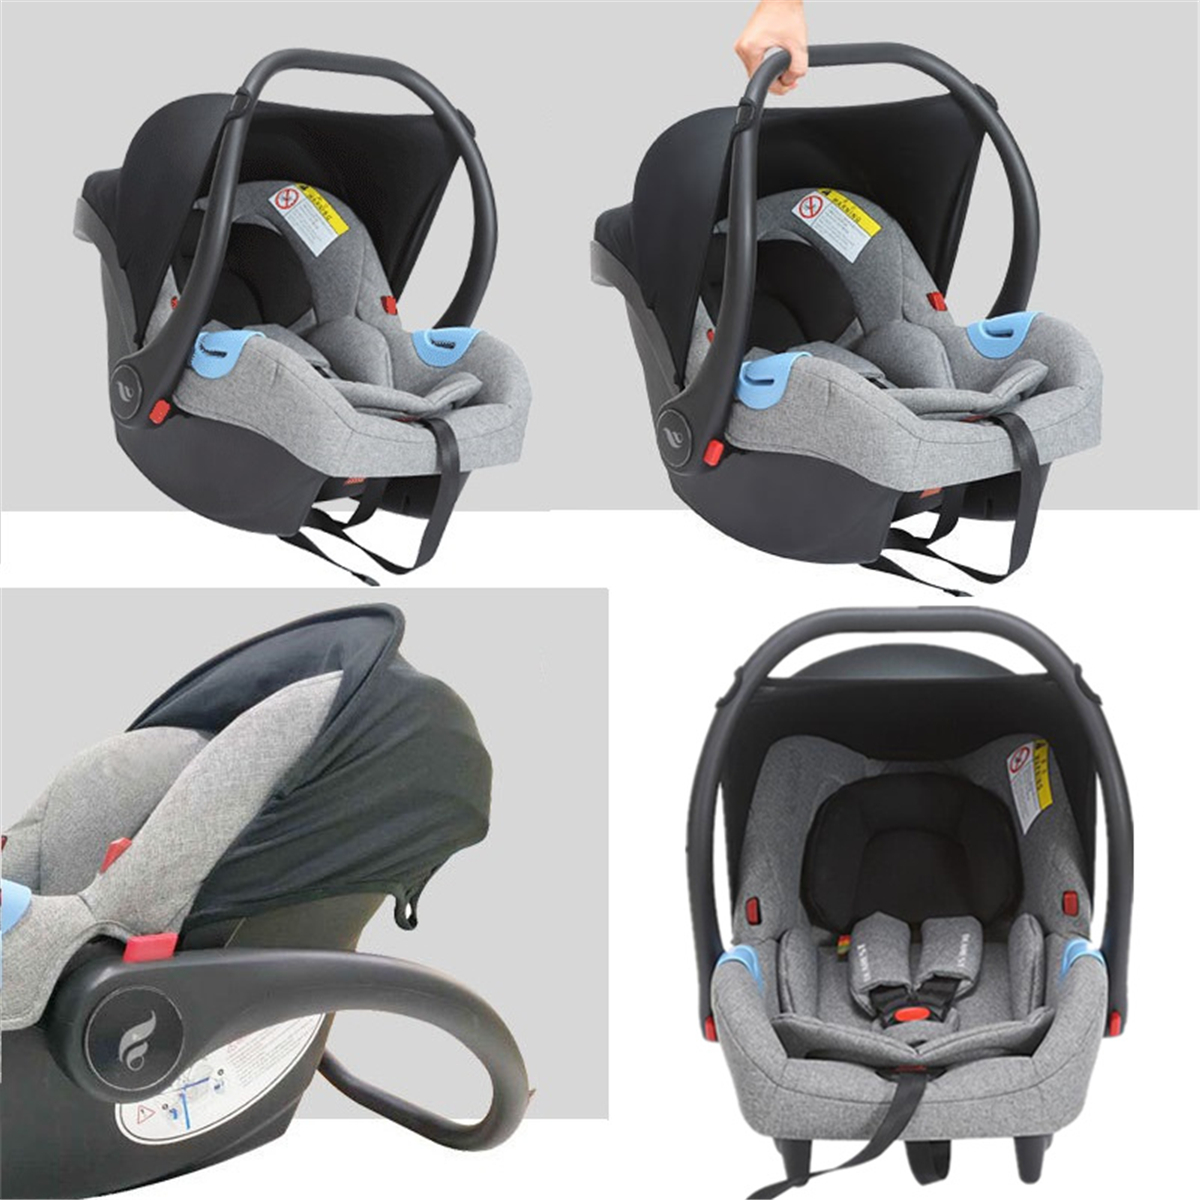 4 In1 Portable Baby Car Infant Safety Cradle Seat Newborn Boy Girl Toddler Protect Chair